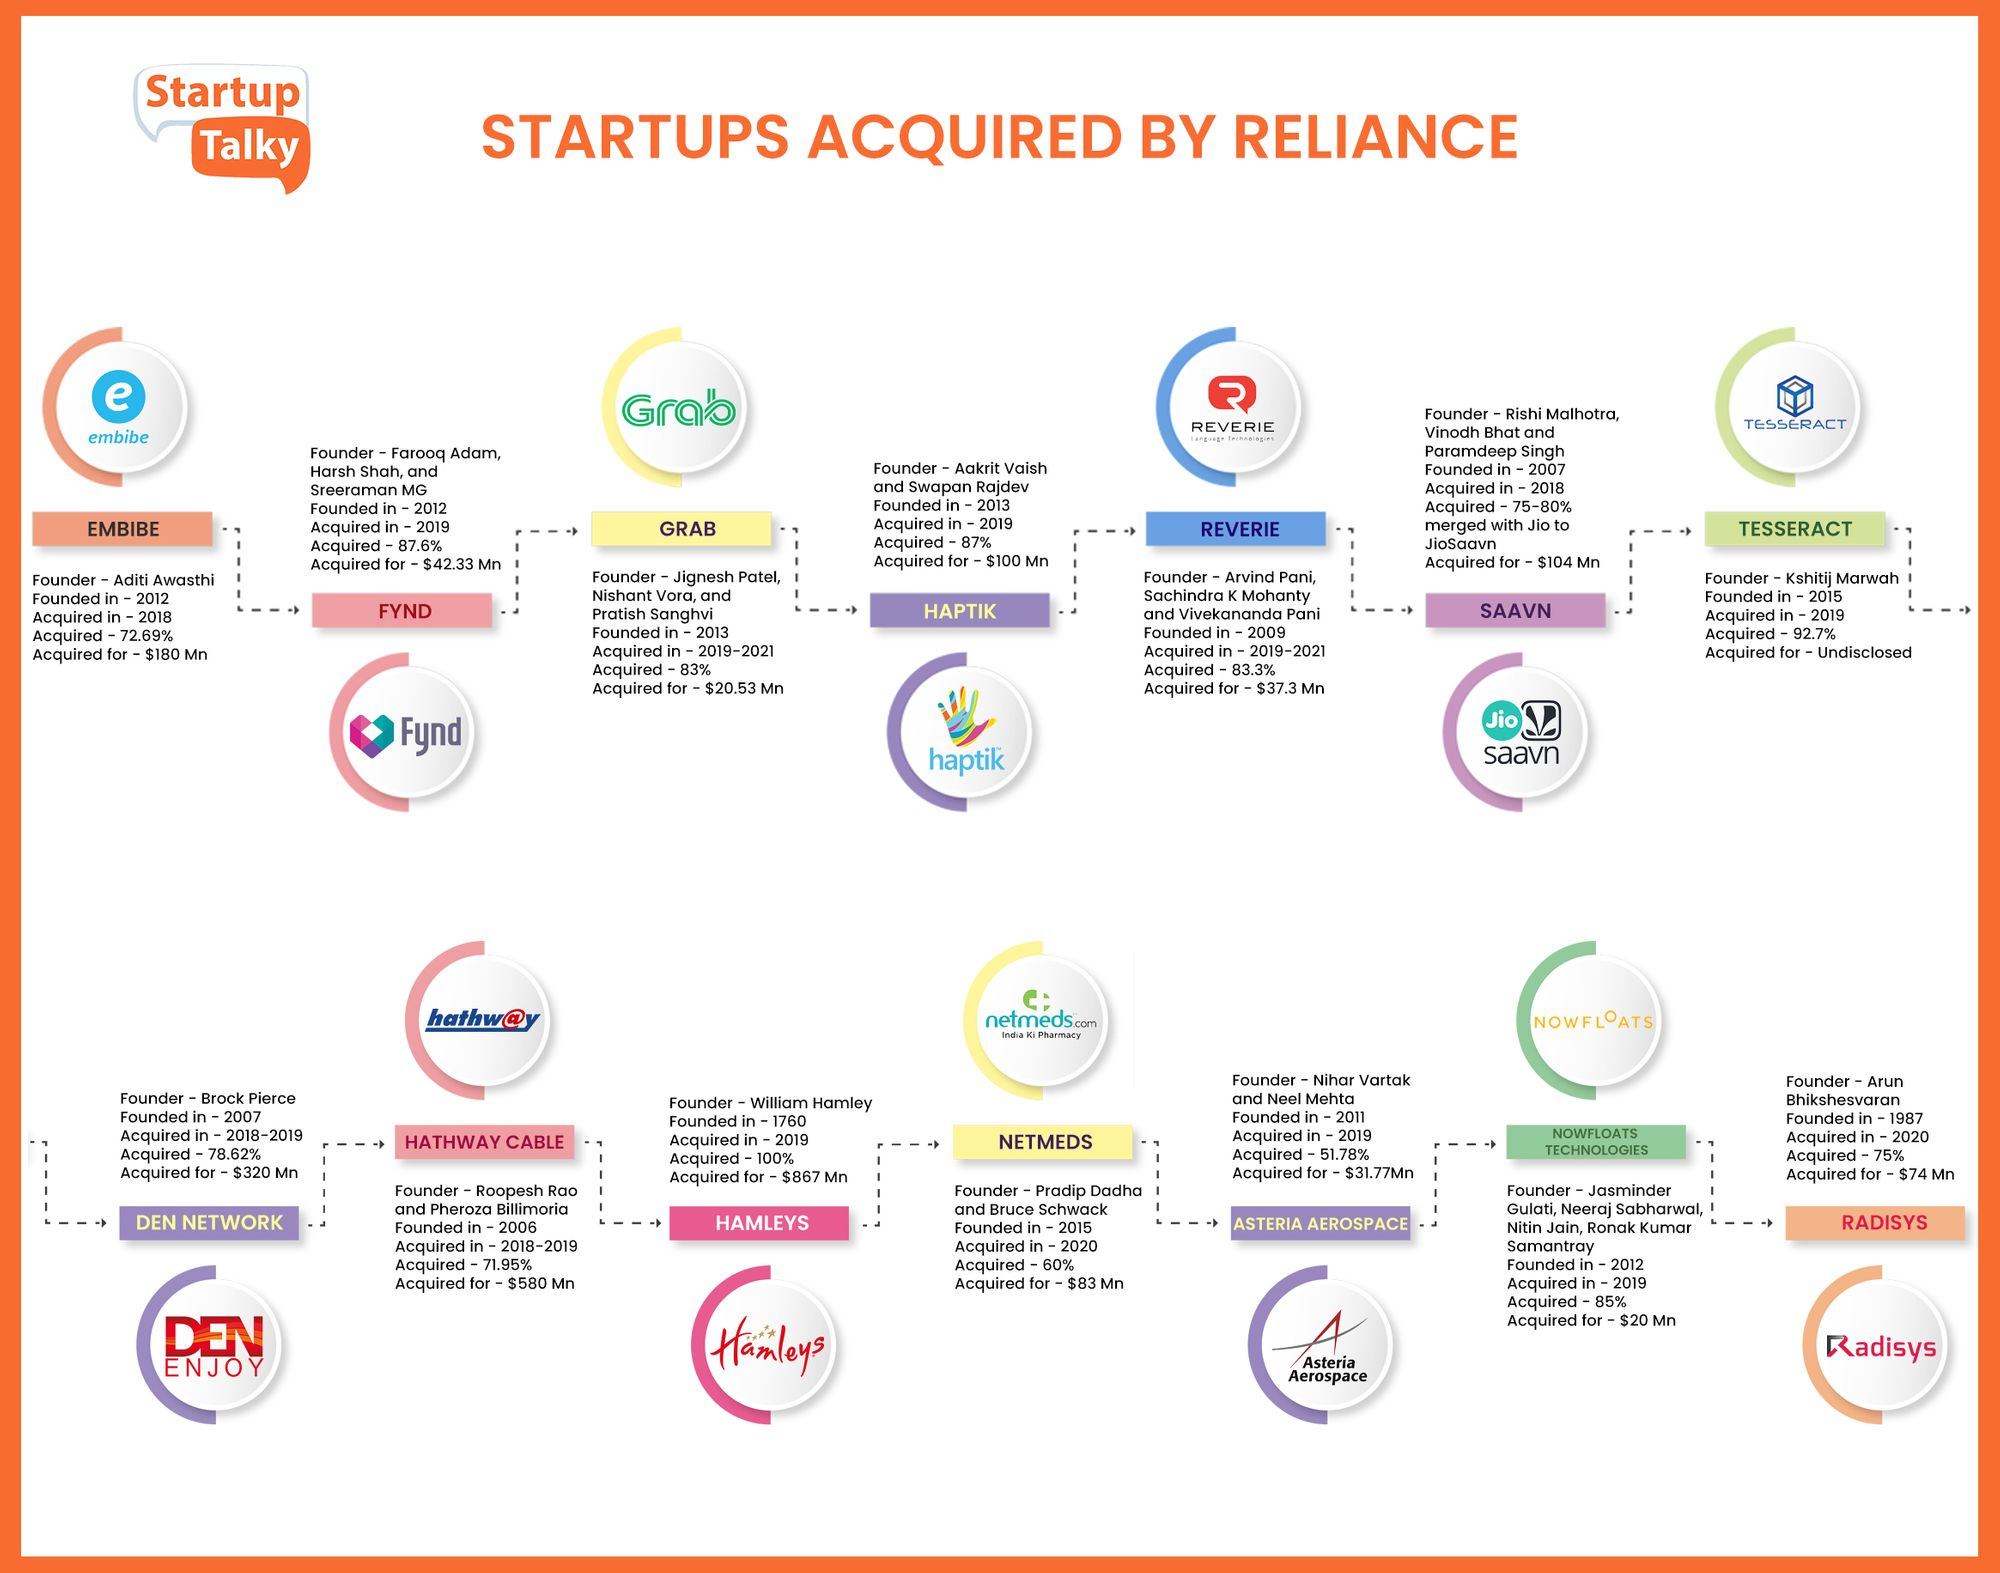 Startups Acquired by Reliance